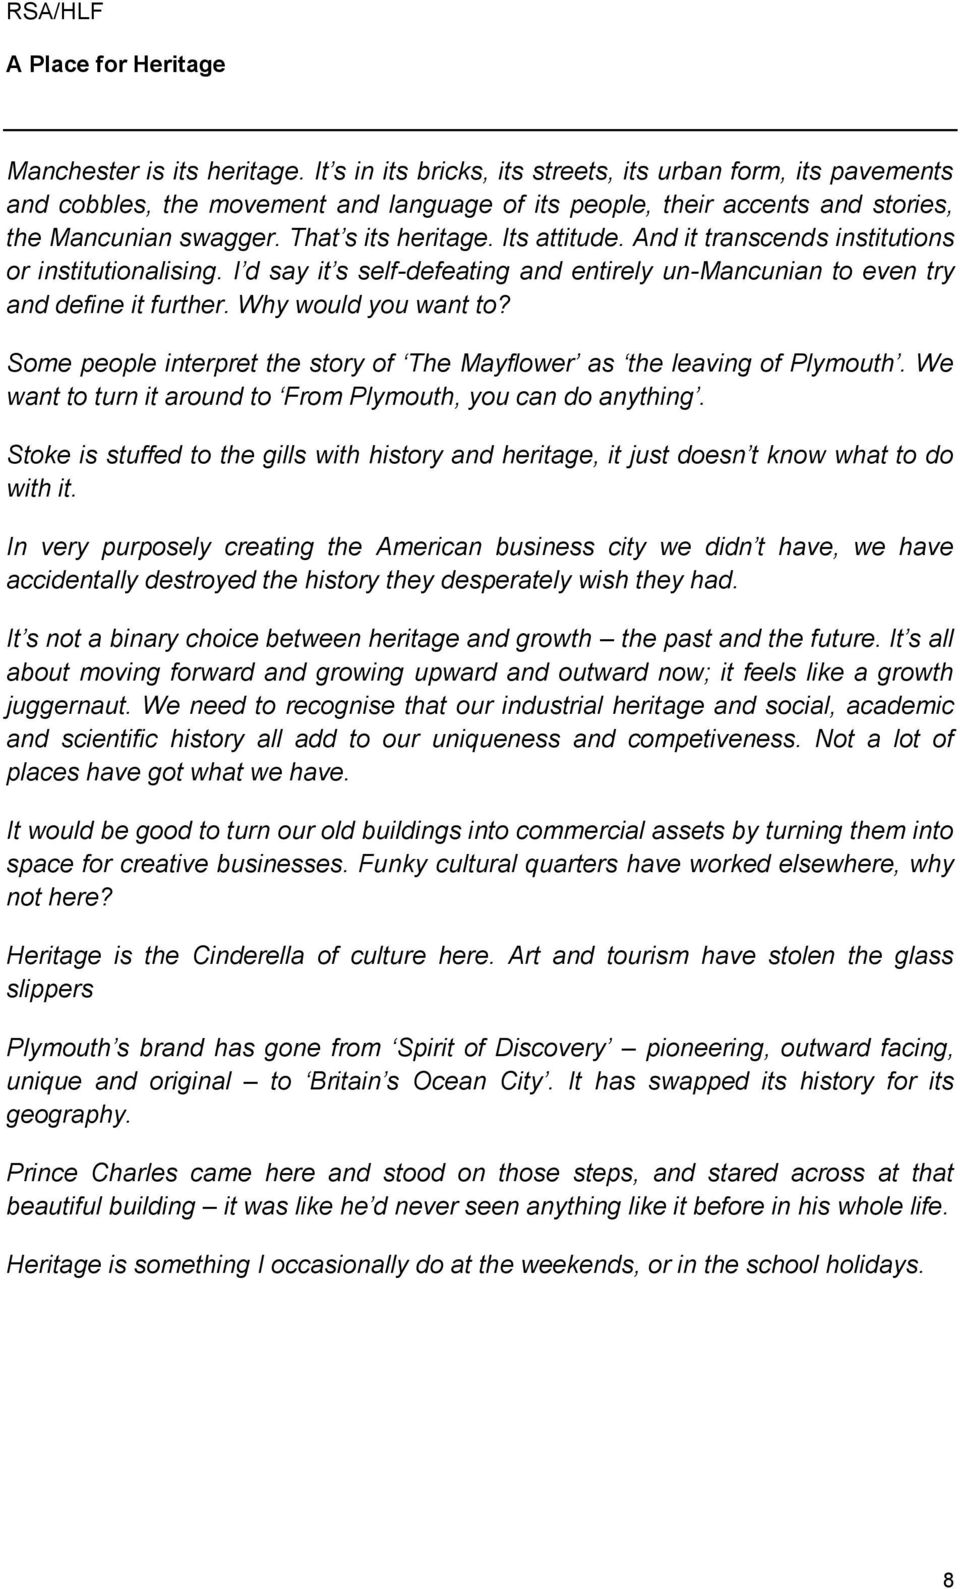 Some people interpret the story of The Mayflower as the leaving of Plymouth. We want to turn it around to From Plymouth, you can do anything.